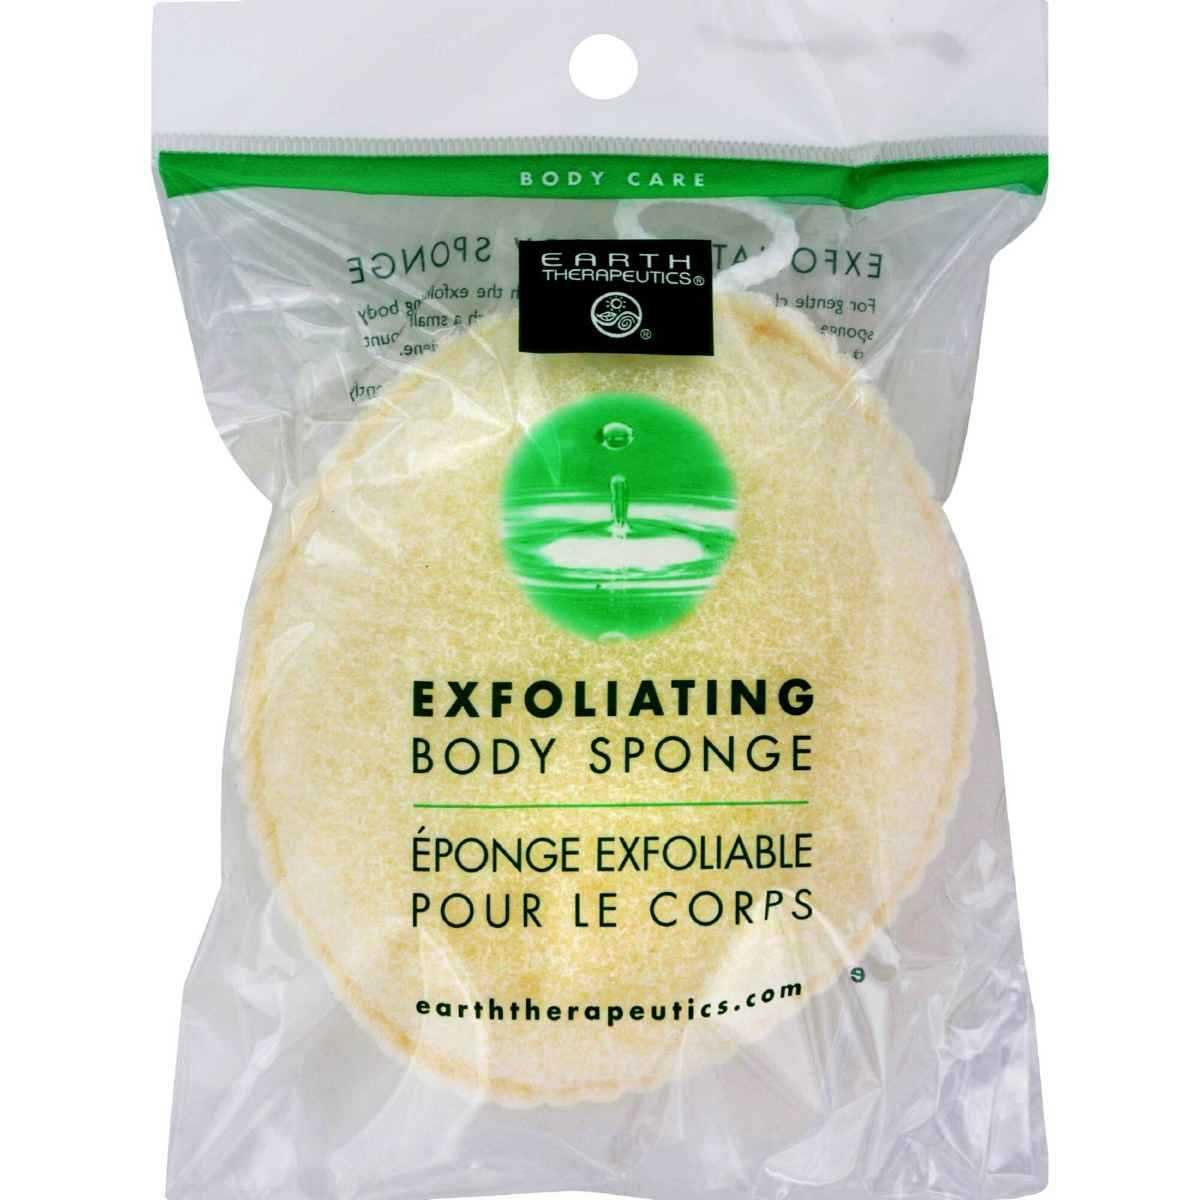 Earth Therapeutics, Exfoliating Body Sponge Sunny Marketing Systems Inc. ET7117